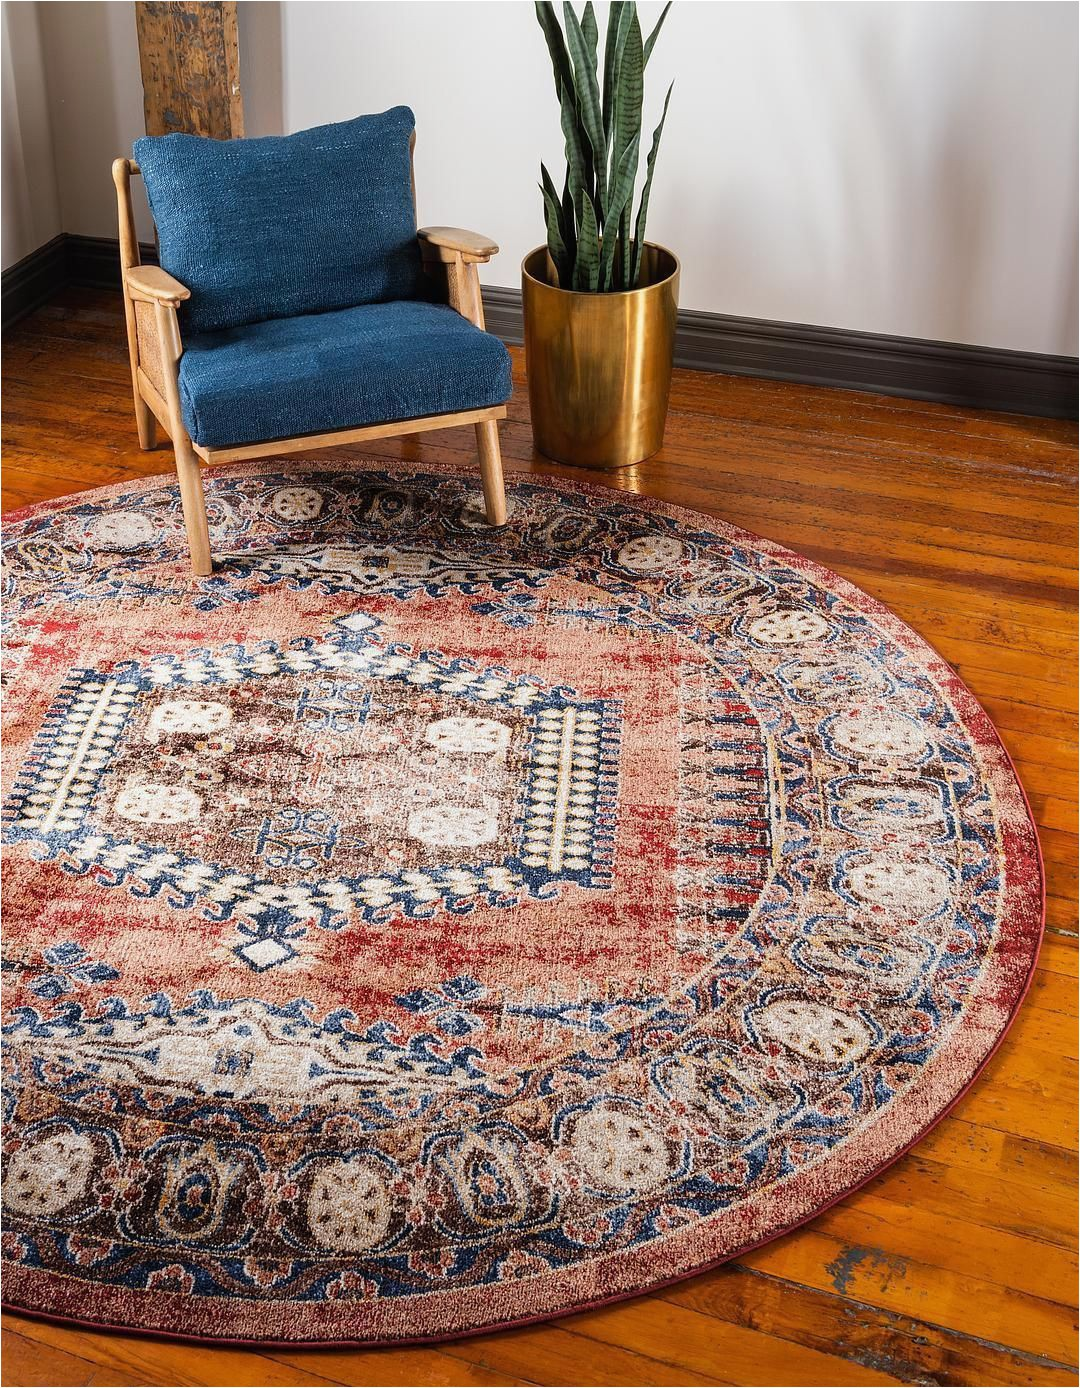 48 Inch Round area Rugs Terracotta 8 X 8 Arcadia Round Rug area Rugs